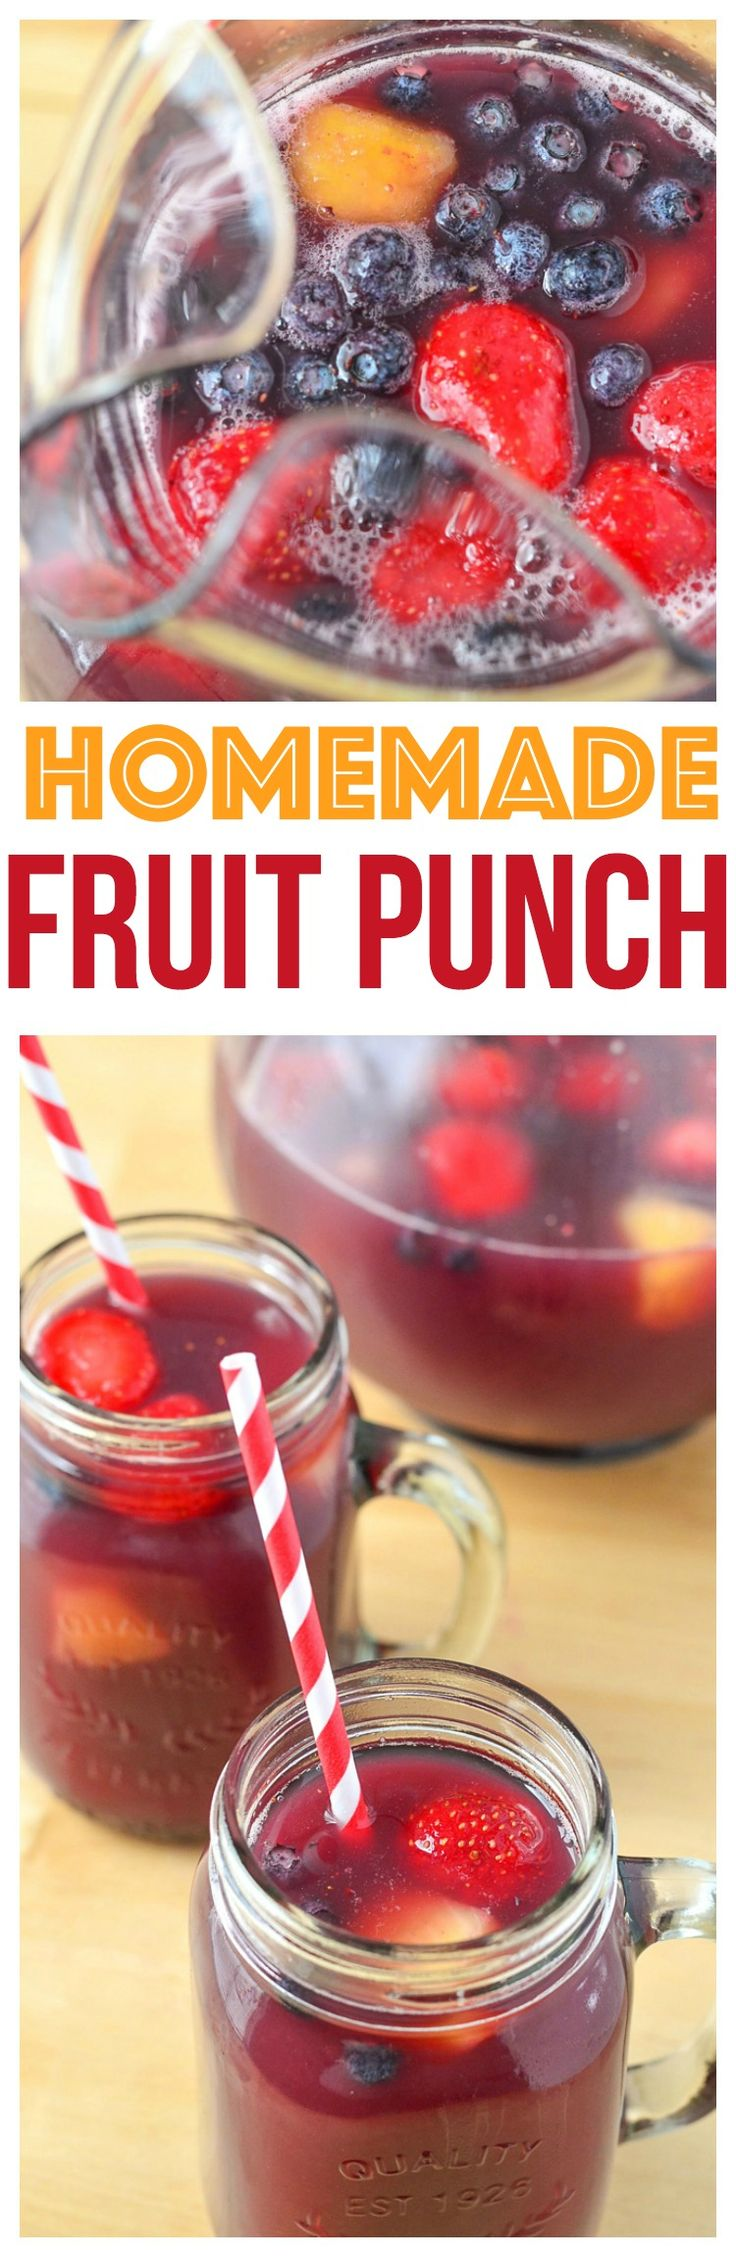 Fun drinks recipes for Kids Mini Chef Mondays homemade fruit punch recipes fruit punch recipes for kids fruit punch recipes non alcoholic  via @CourtneysSweets